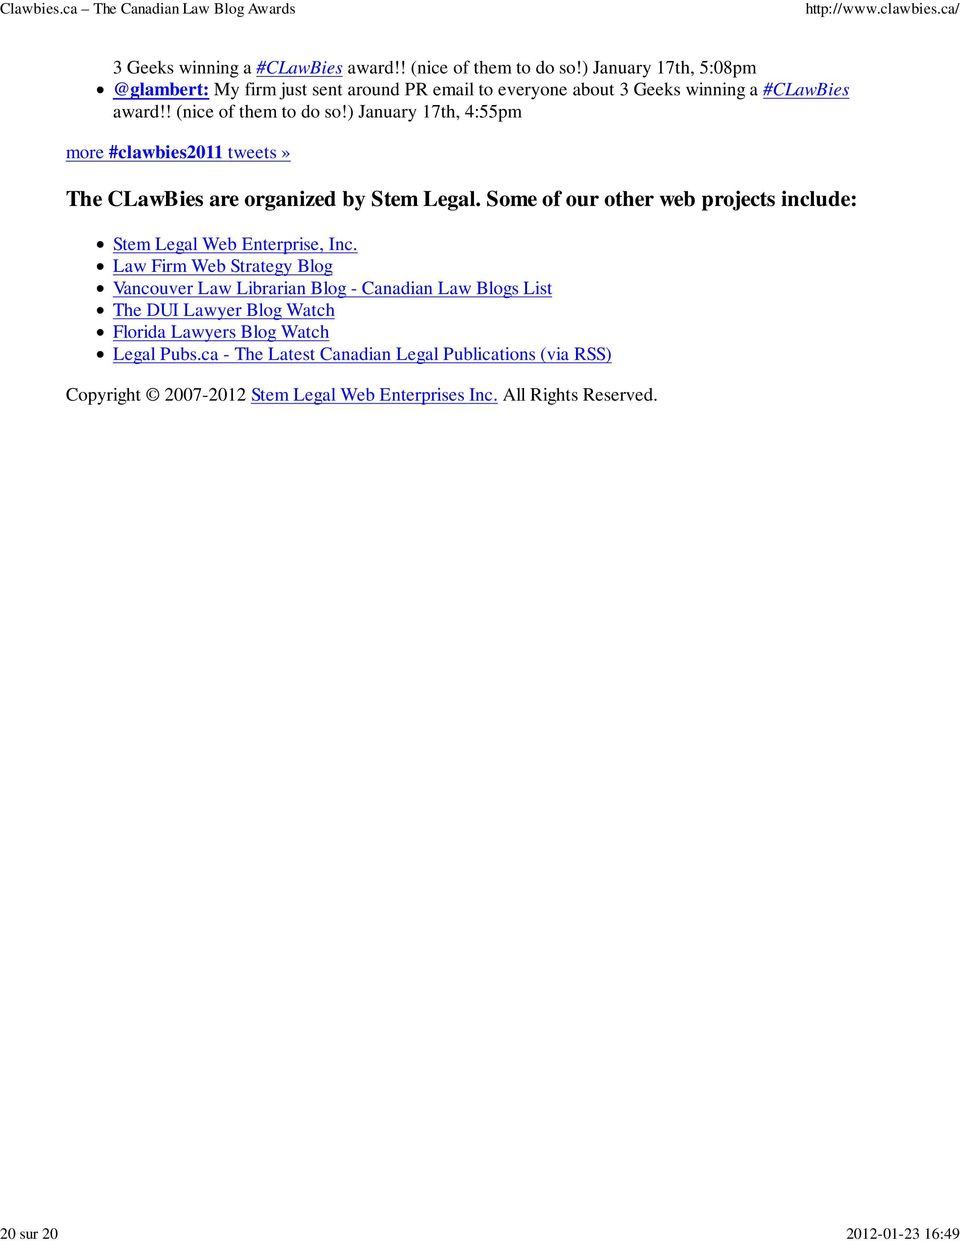 ) January 17th, 4:55pm more #clawbies2011 tweets» The CLawBies are organized by Stem Legal. Some of our other web projects include: Stem Legal Web Enterprise, Inc.